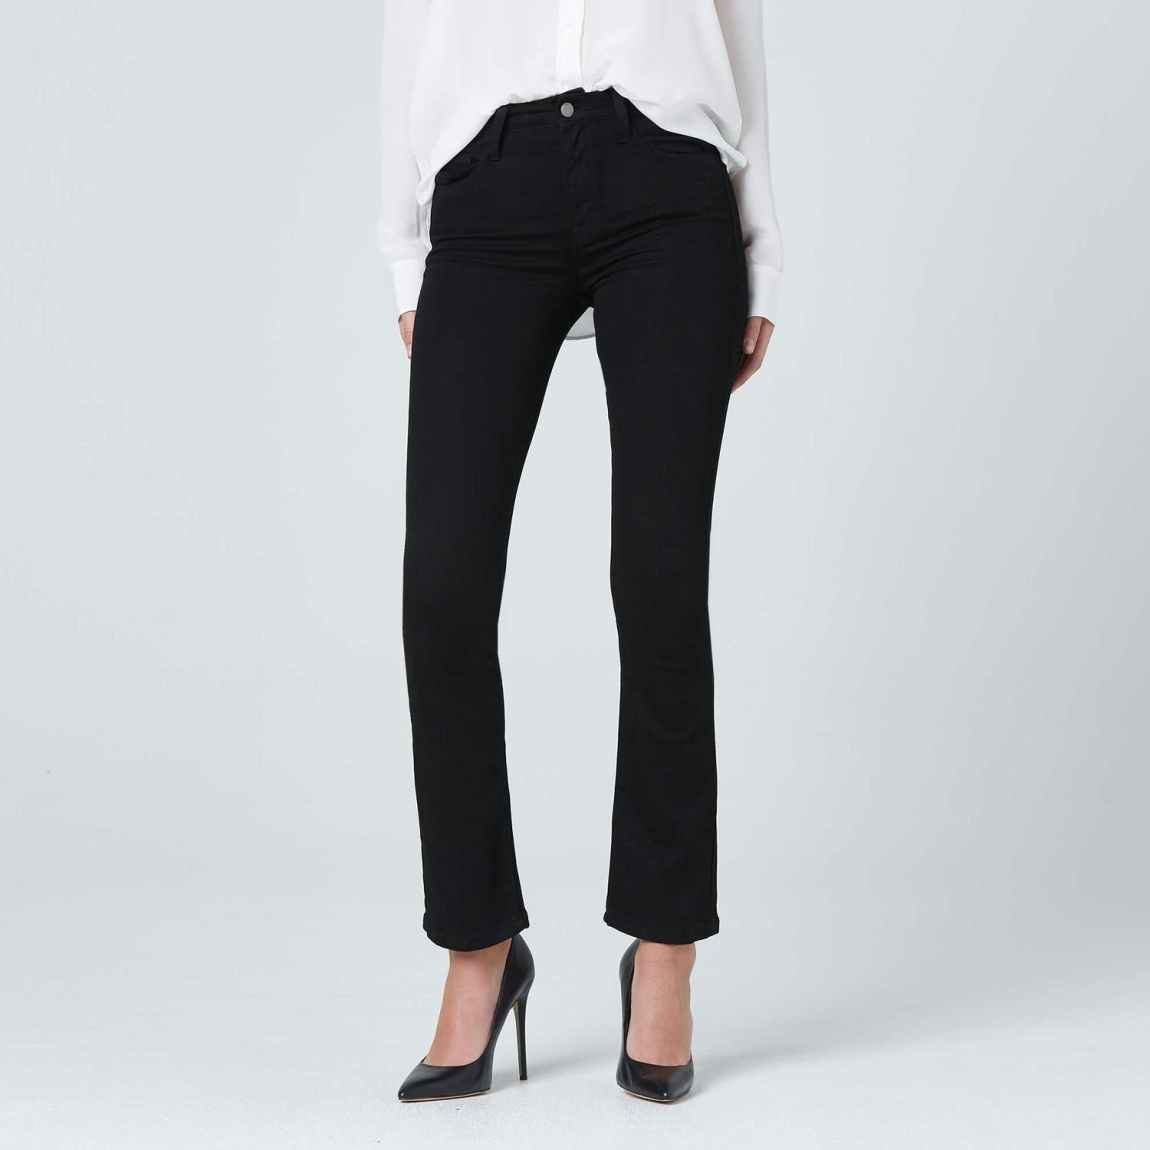 dstld, dstld jeans, skinny jeans, bootcut jeans, skinny bootcut jeans, black jeans, stretch denim, kick flare, cropped boot